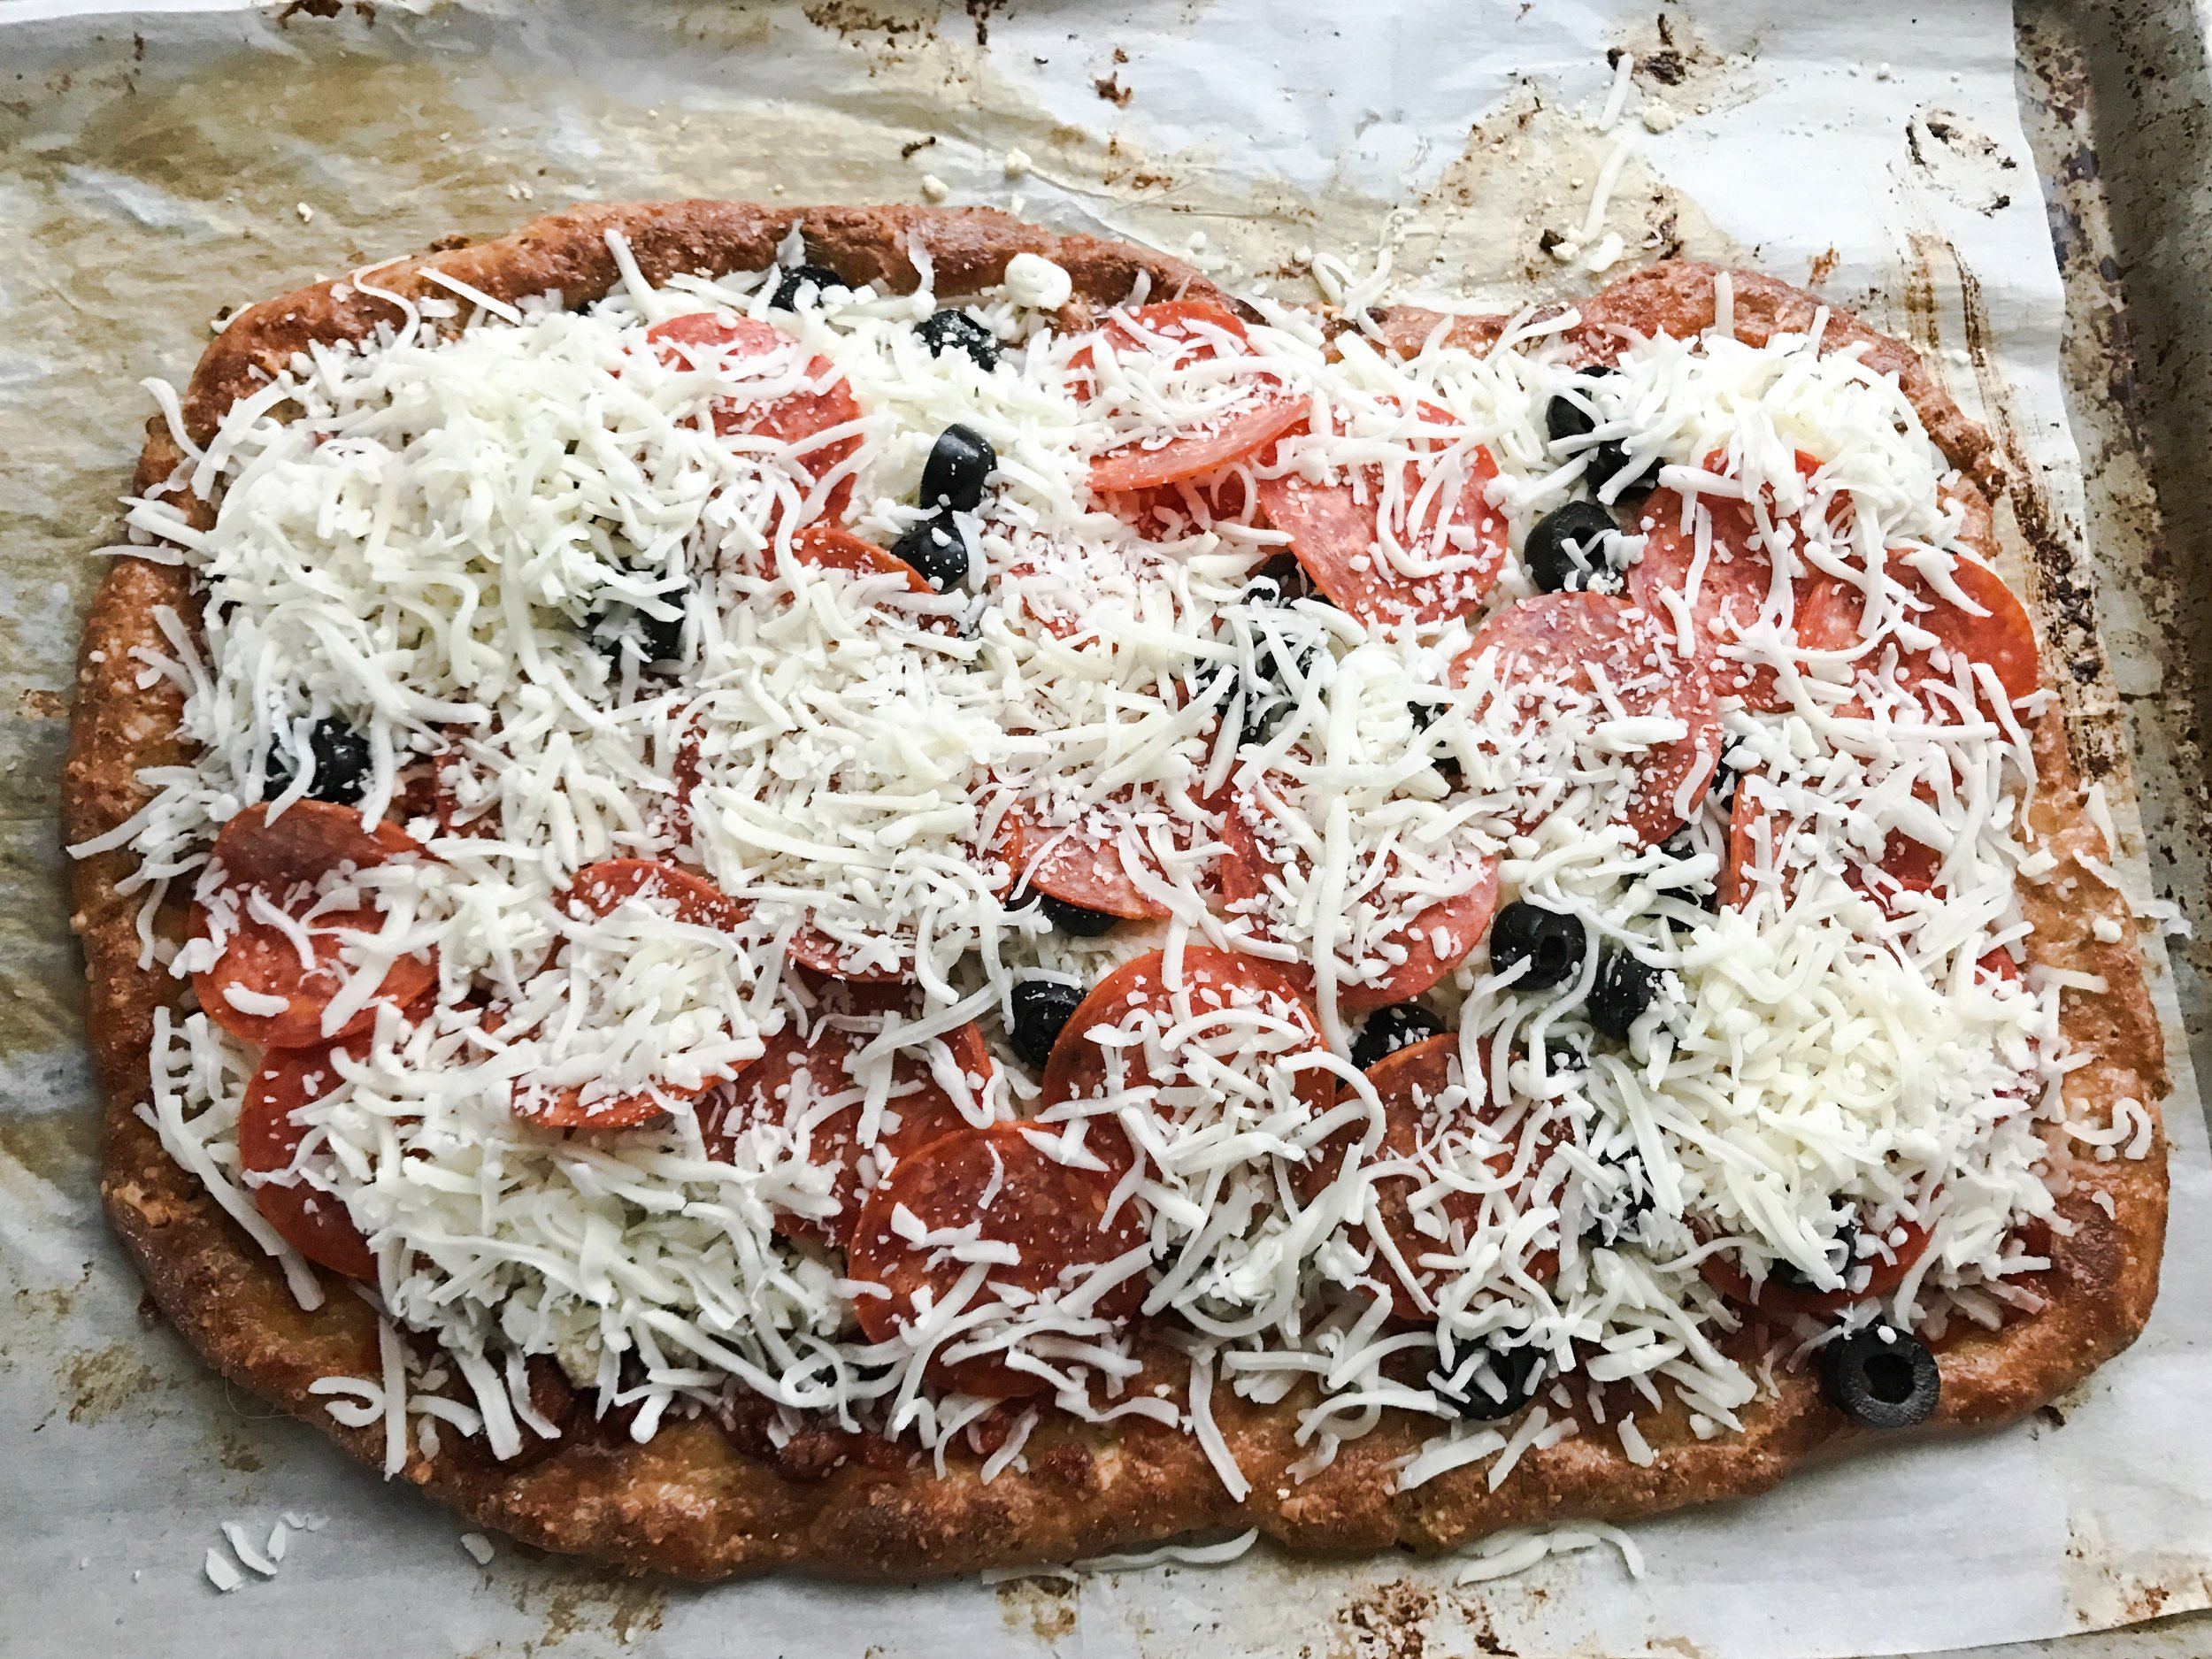 I forgot to take a picture of the crust baked. Ooops! Once crust is golden brown, take it out and add your sauce and toppings. I used Puttanesca Sauce on bottom, then a layer of shredded Mozzarella, then grated Parm, then sliced black olives, then Pepperoni, and then more cheese! I used an entire 16oz bag of shredded Mozzarella cheese by the time I was done between the crust and the toppings.